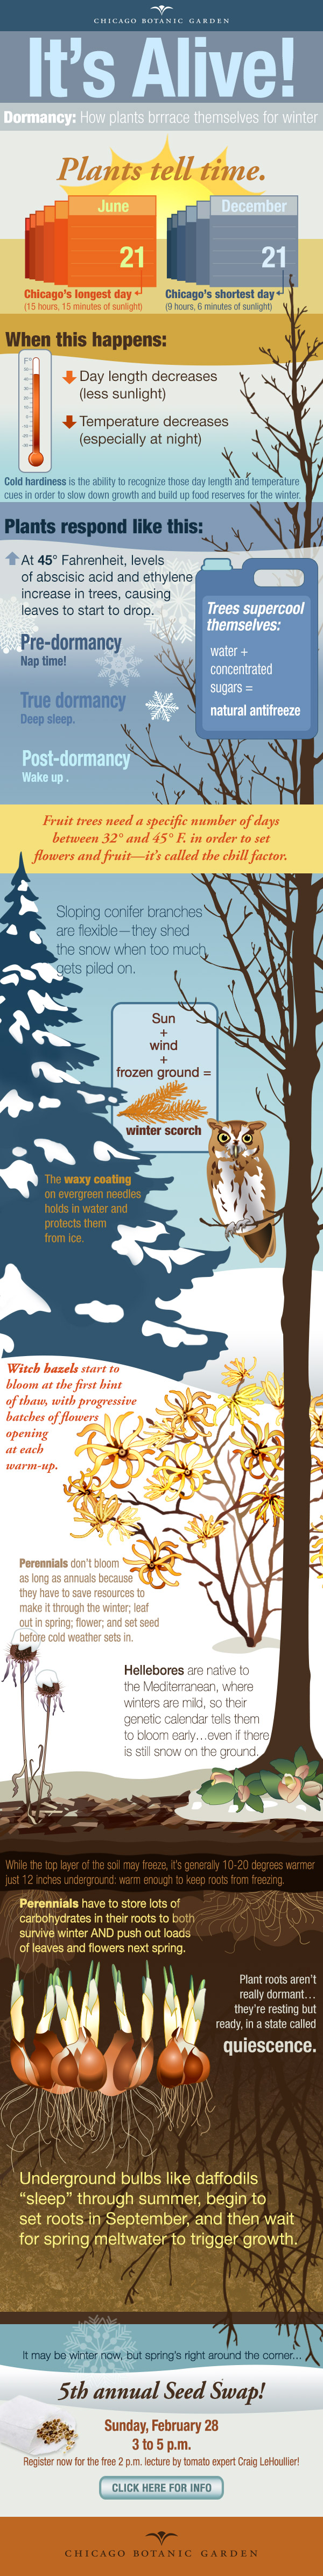 ILLUSTRATION: An infographic about winter.